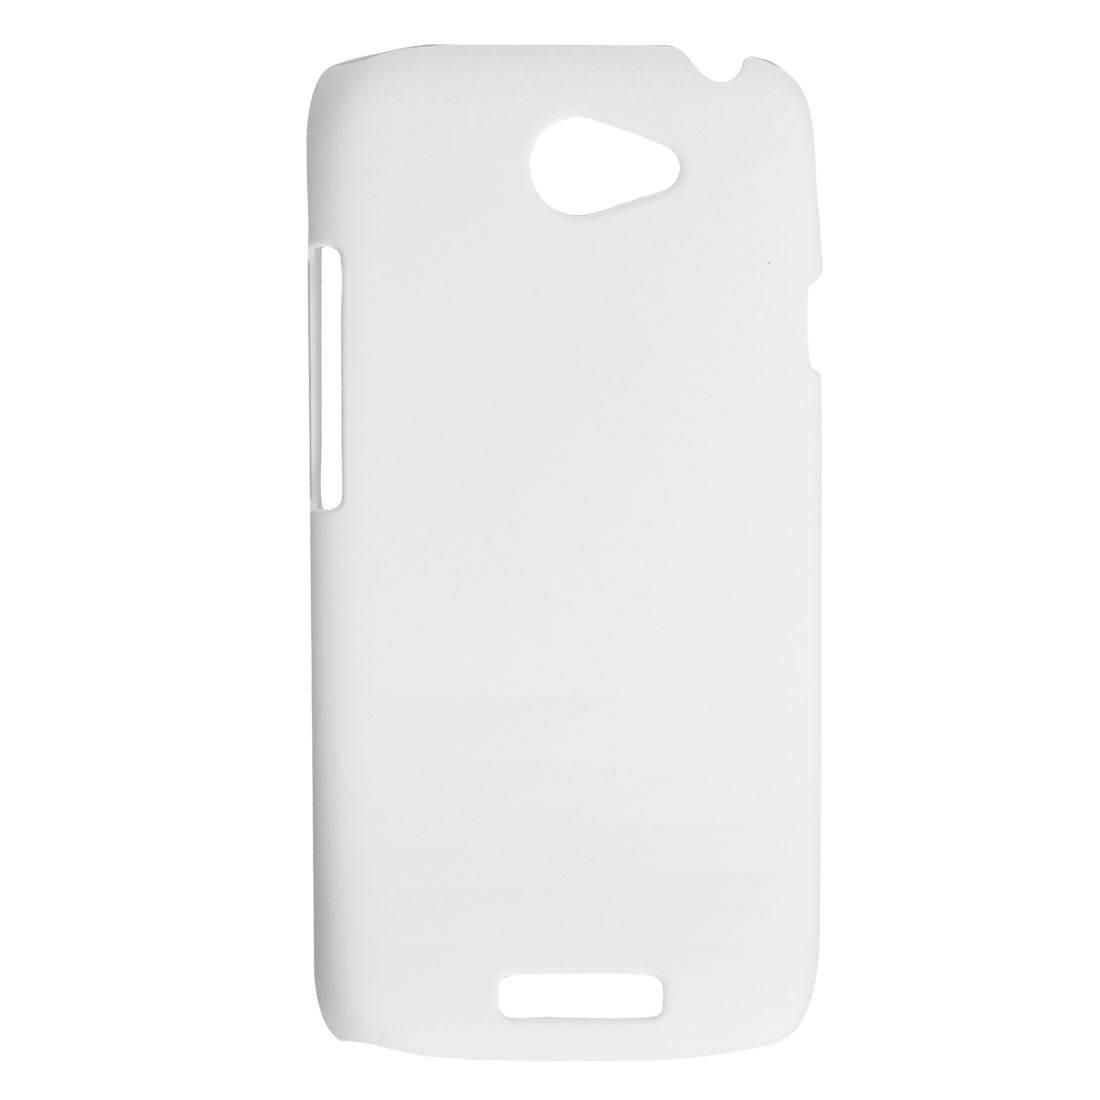 White Rubberized Hard Plastic Back Case Shell for HTC One S Z520e